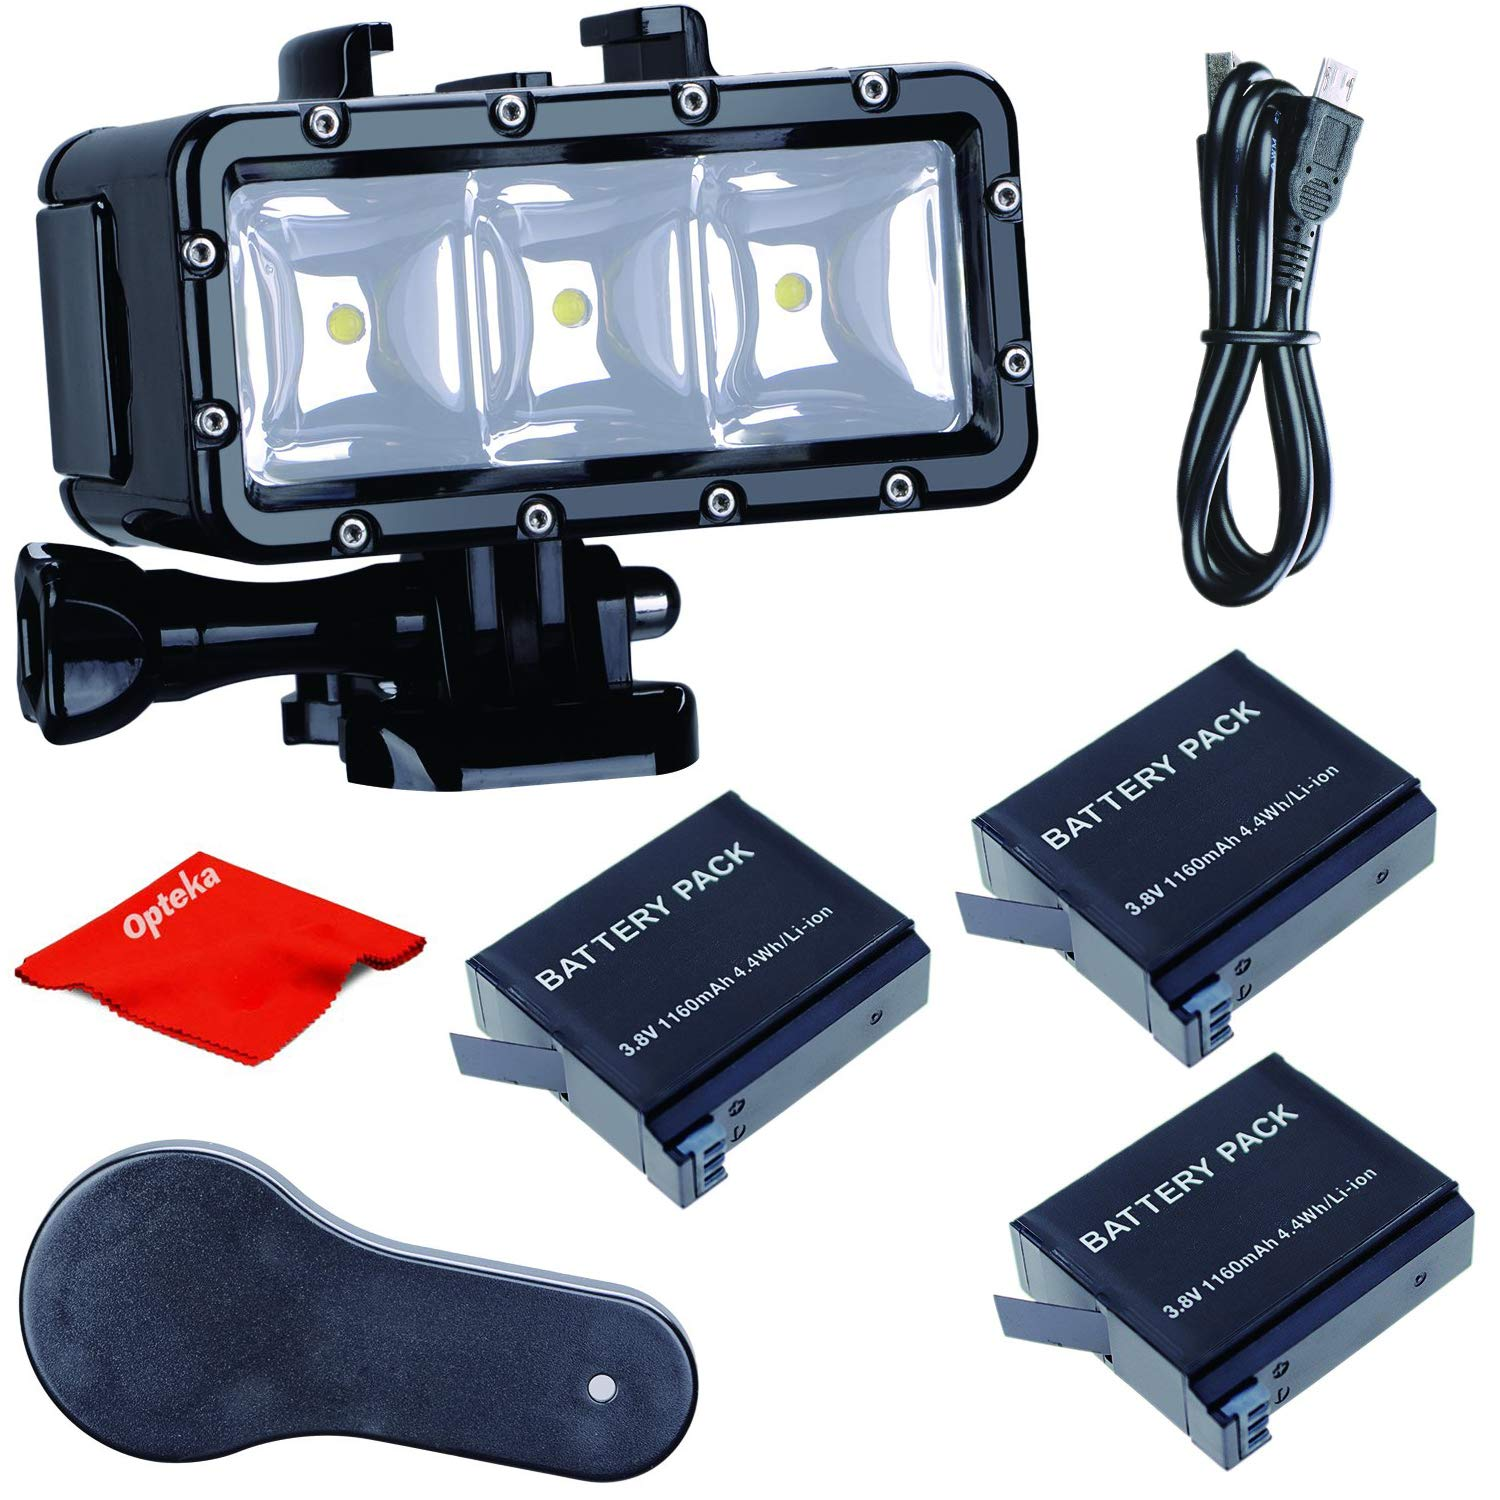 Opteka High-Power Underwater Diving Waterproof 147ft(45m) LED Video Light for GoPro Hero 7/6/5/5S/4/4S/3+/2/SJCAM/YI Action Cameras by Opteka